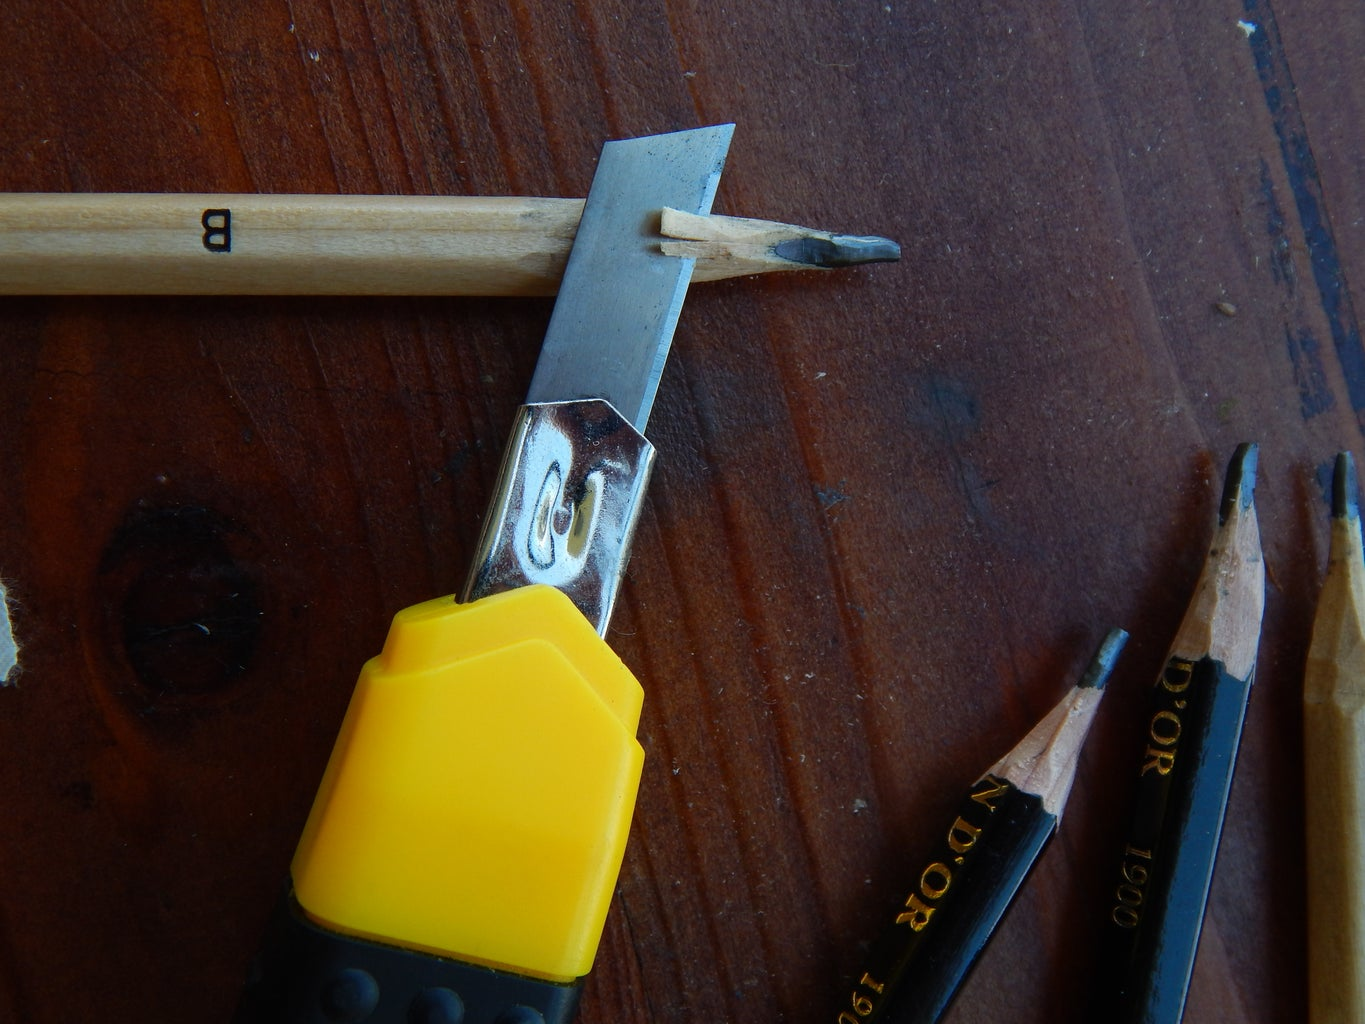 Sharpening the Pencils